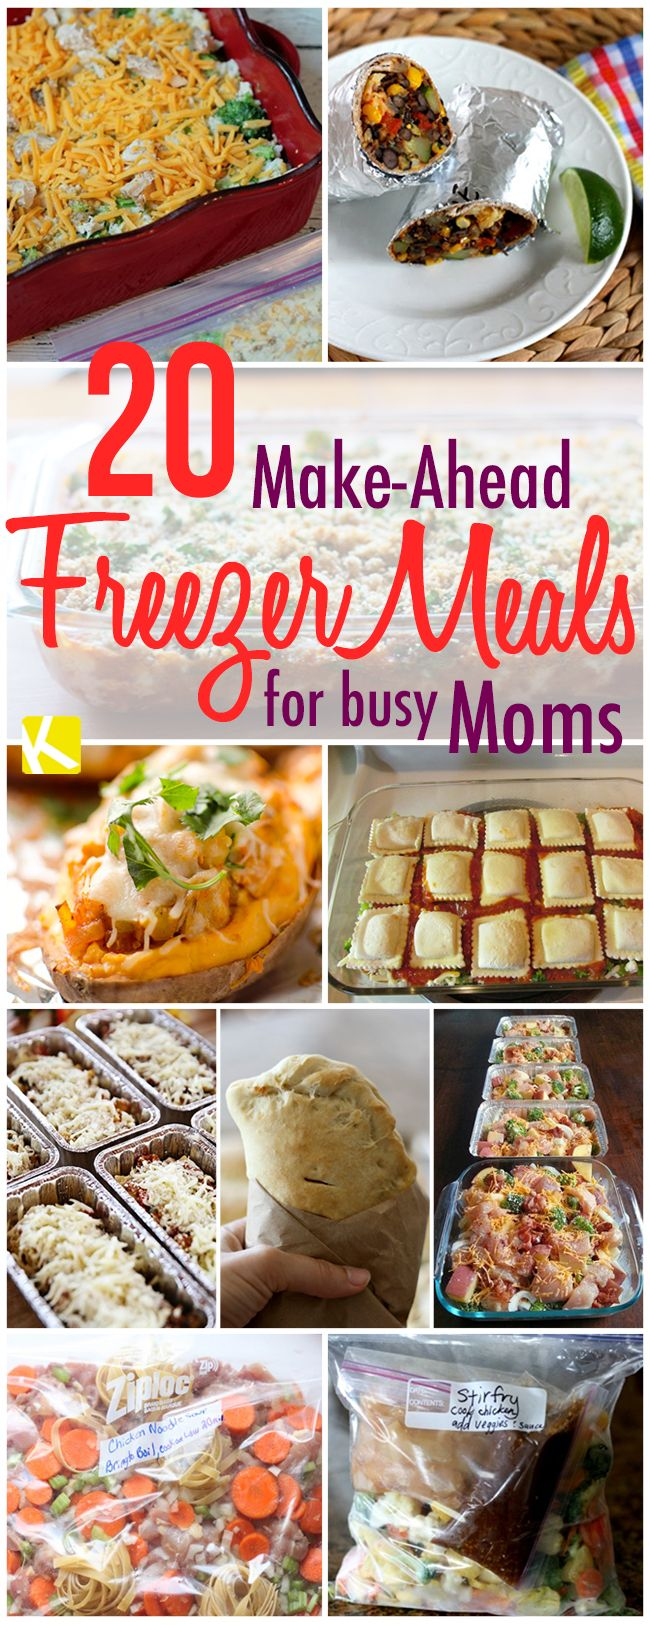 20 Make-Ahead Freezer Dinners for Busy Moms — Busy parents, rejoice! These are super easy! #freezermeals